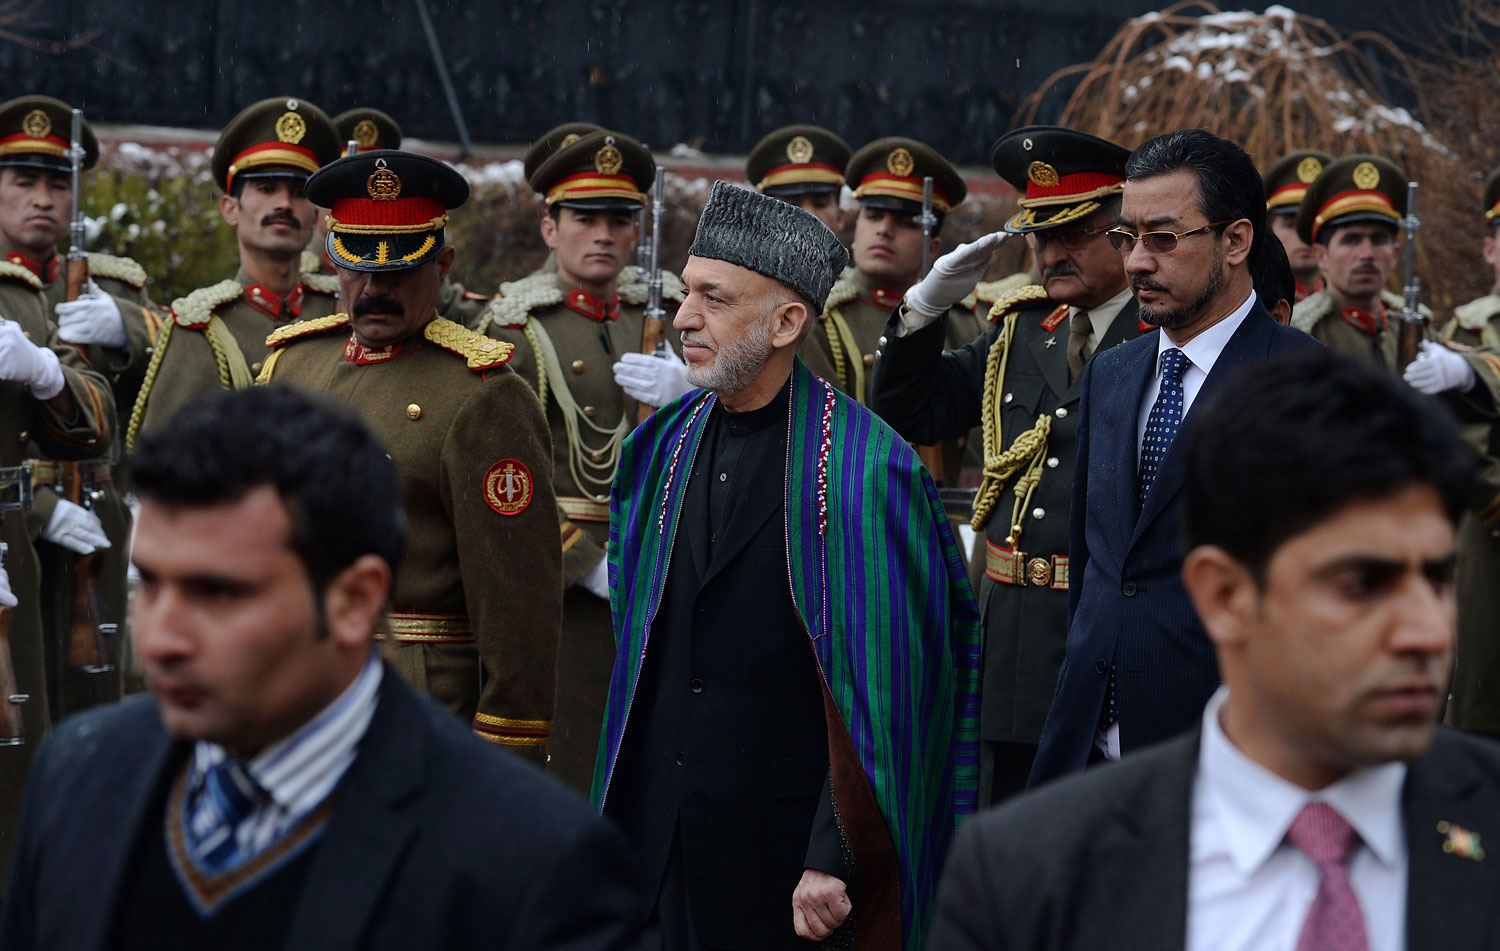 Afghan President Hamid Karzai, center, inspects a guard of honour as he arrives to deliver his final address in parliament in Kabul on March 15, 2014.